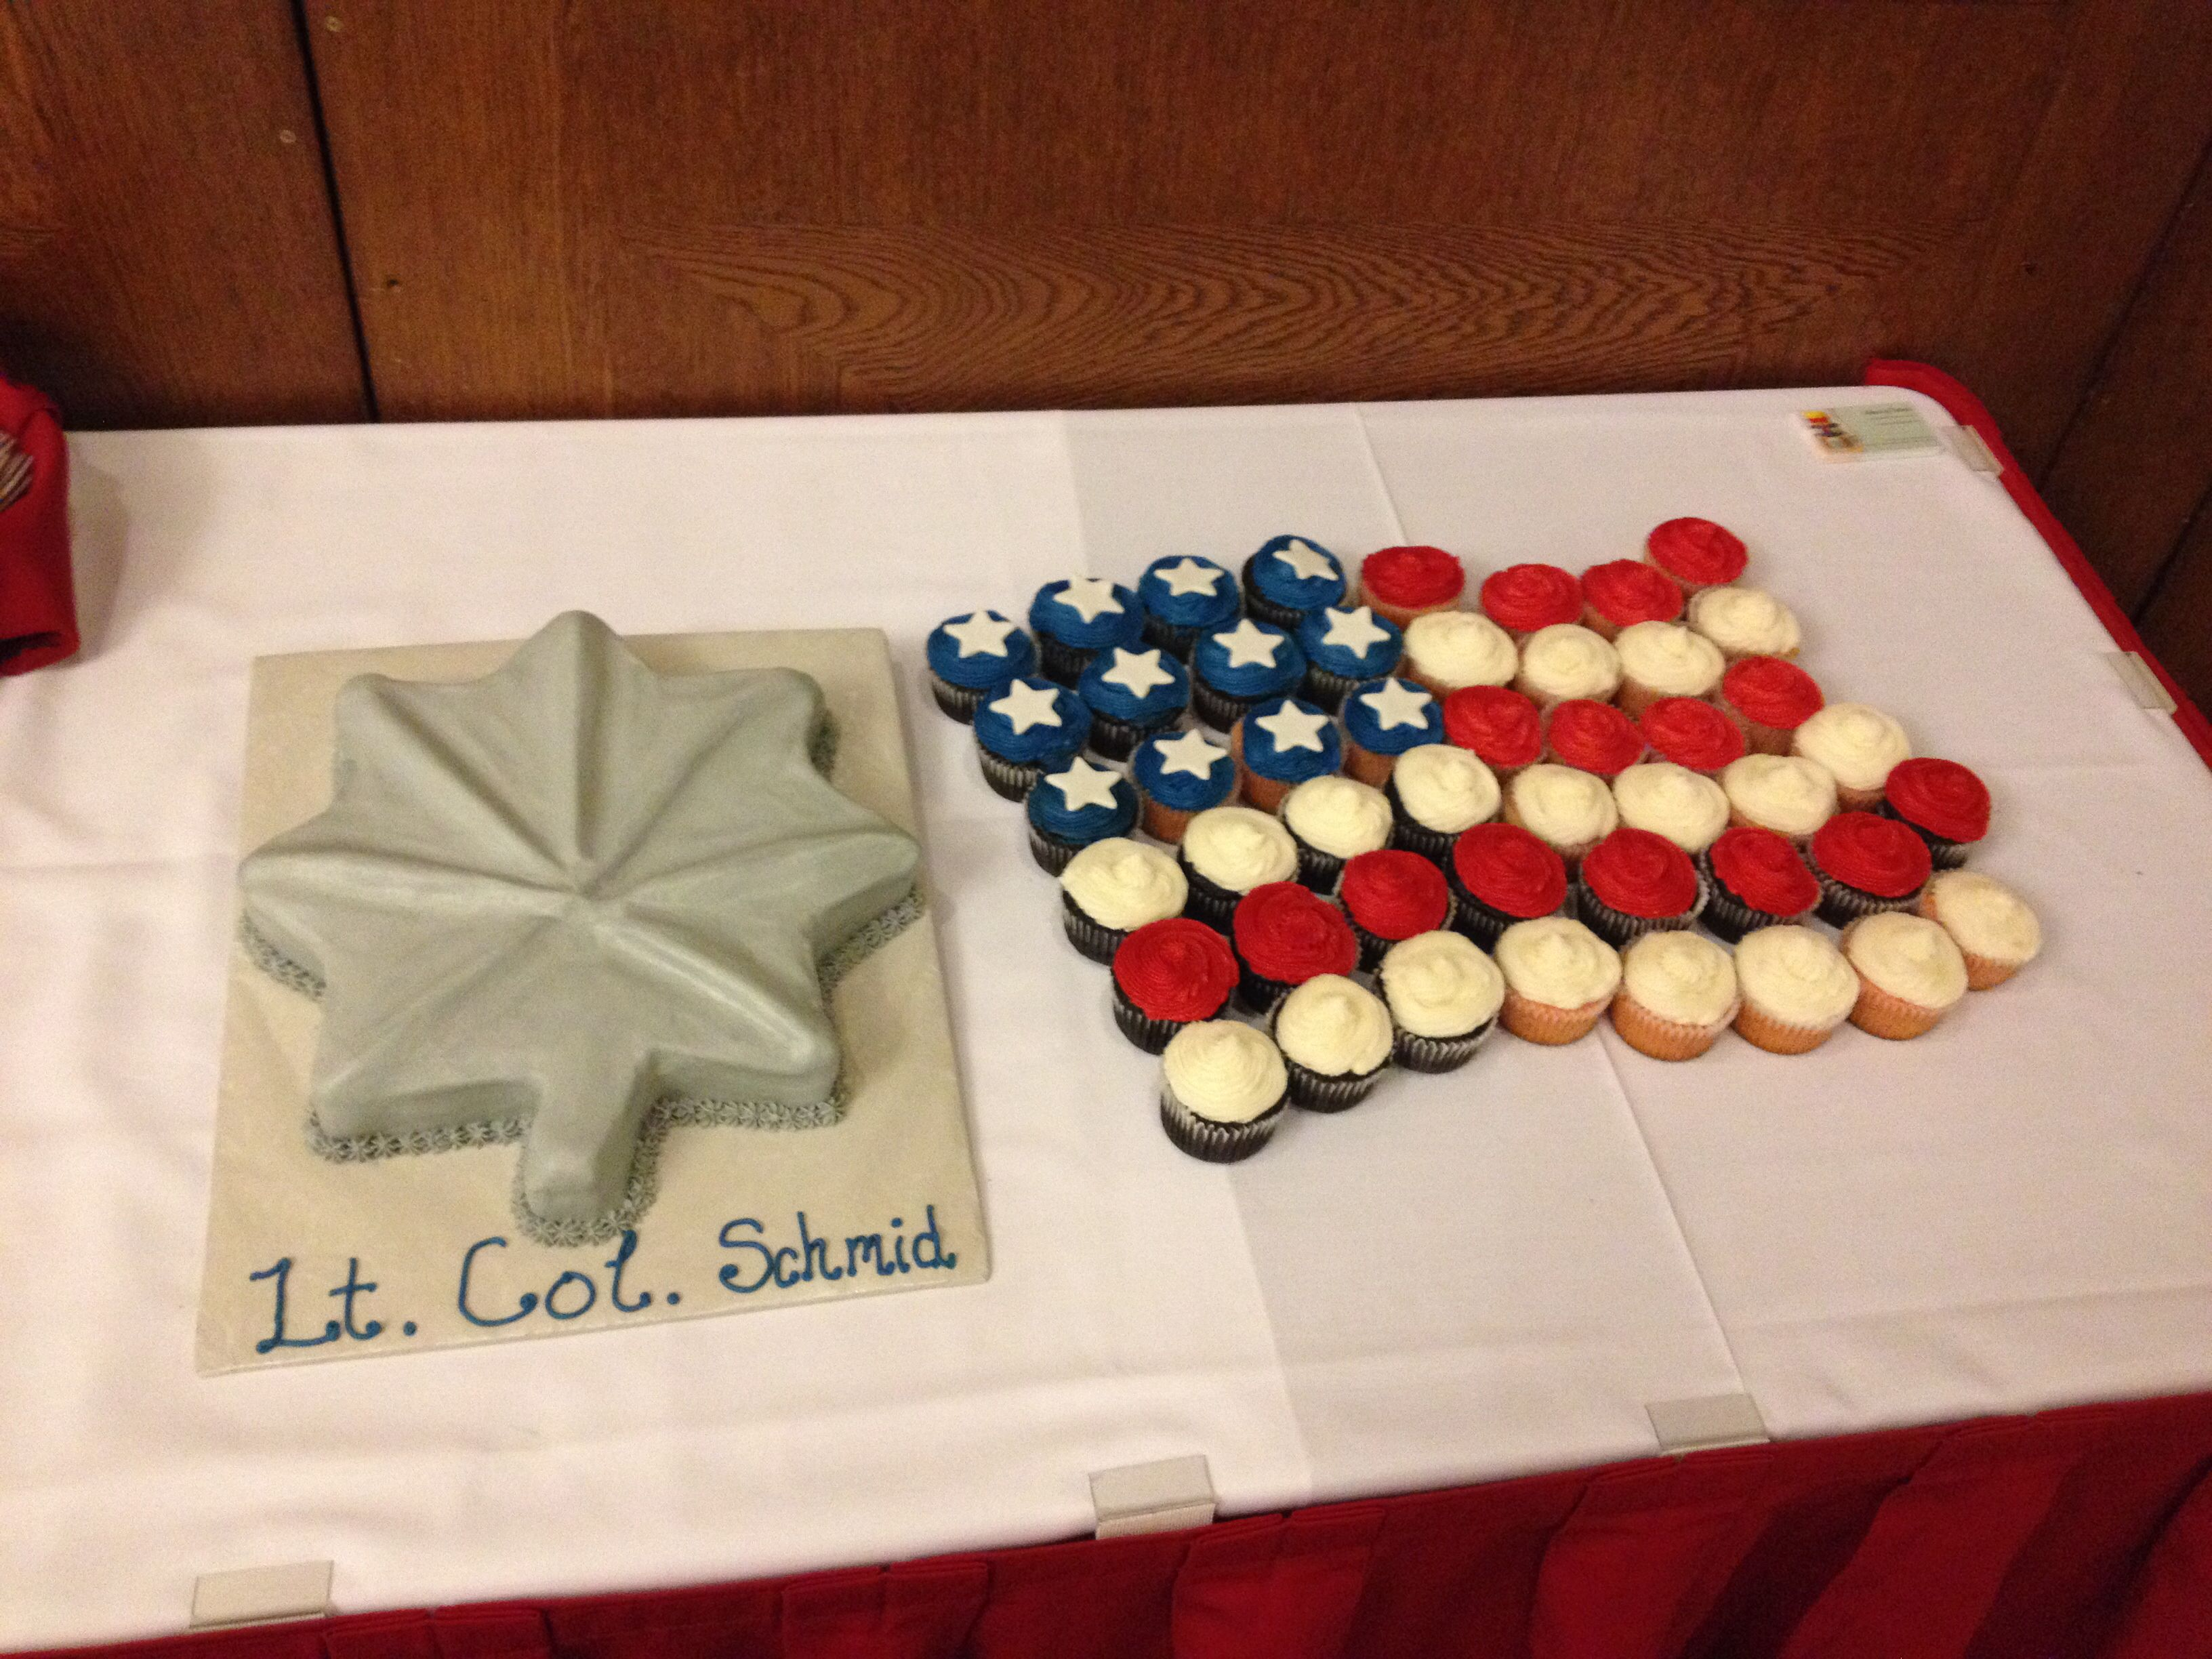 Lt. Col Promotion cake and cupcakes